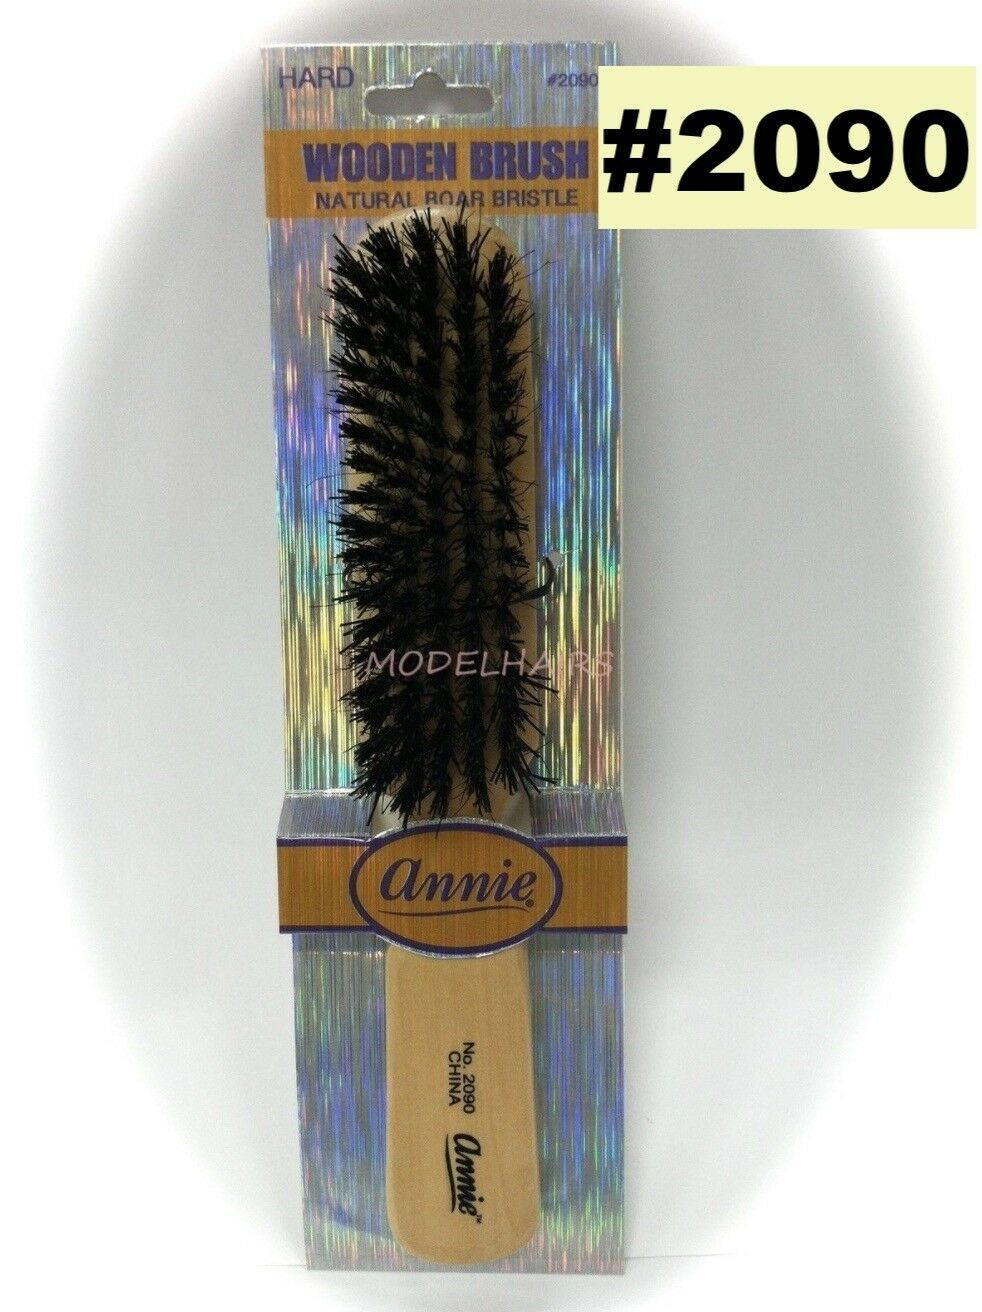 ANNIE WOODEN BRUSH NATURAL BOAR BRISTLE  #2090- HARD - $1.97